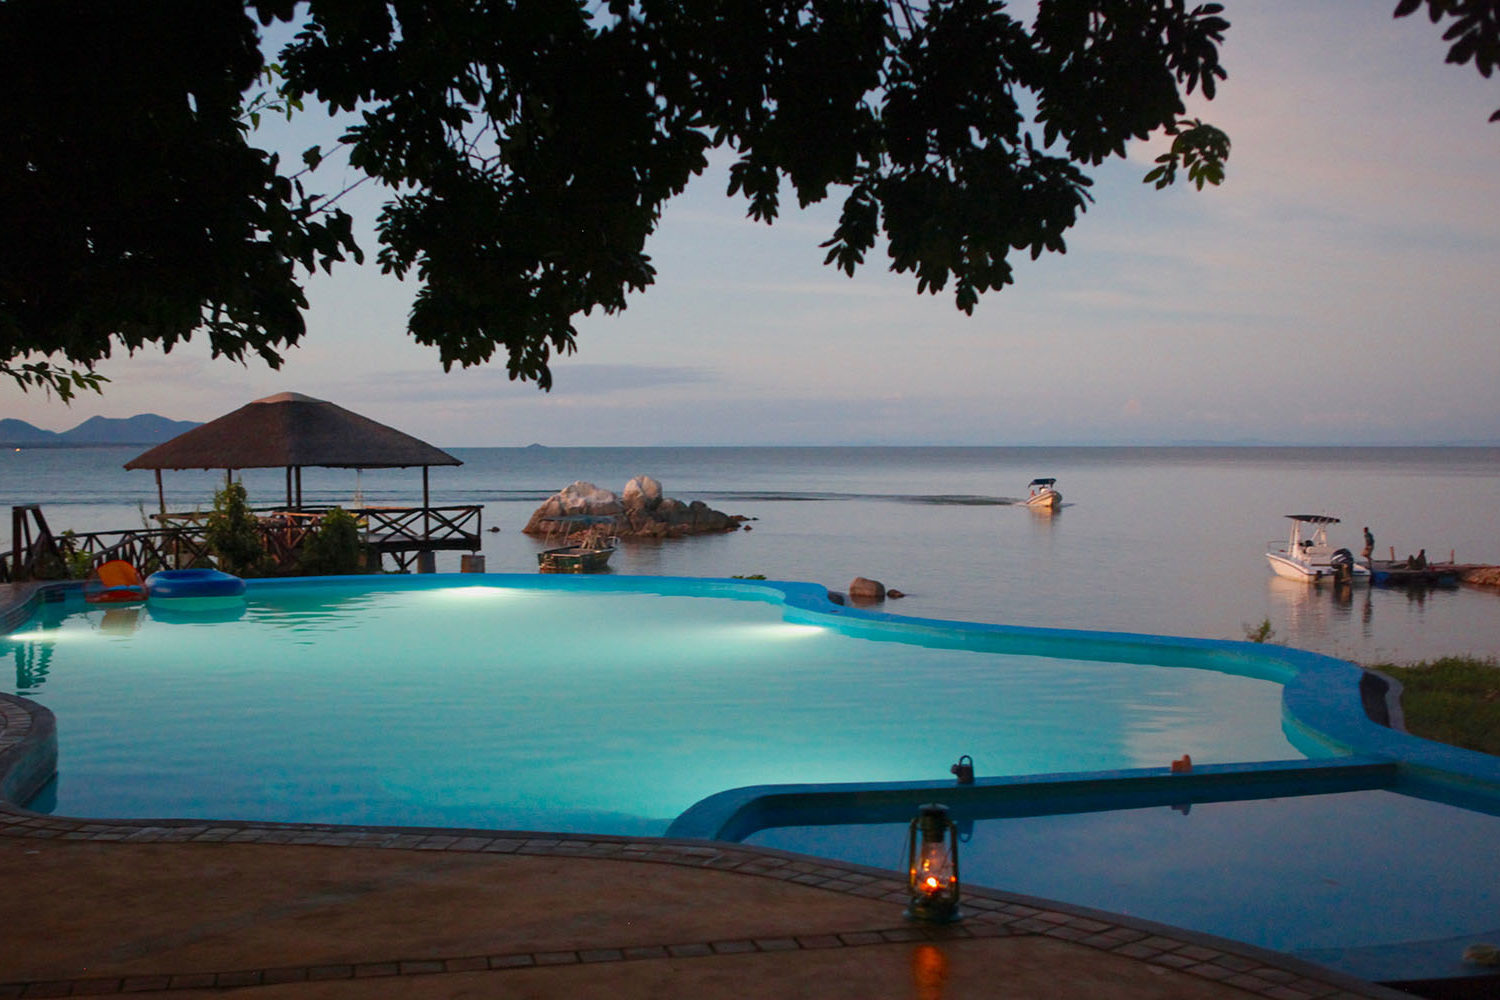 southern-adventurer-11-nights-tours-safaris-malawian-style-malawi-adventures-experiences-holidays-specialist-tour-operator-blue-zebra-lodge-lake-malawi-infinity-pool